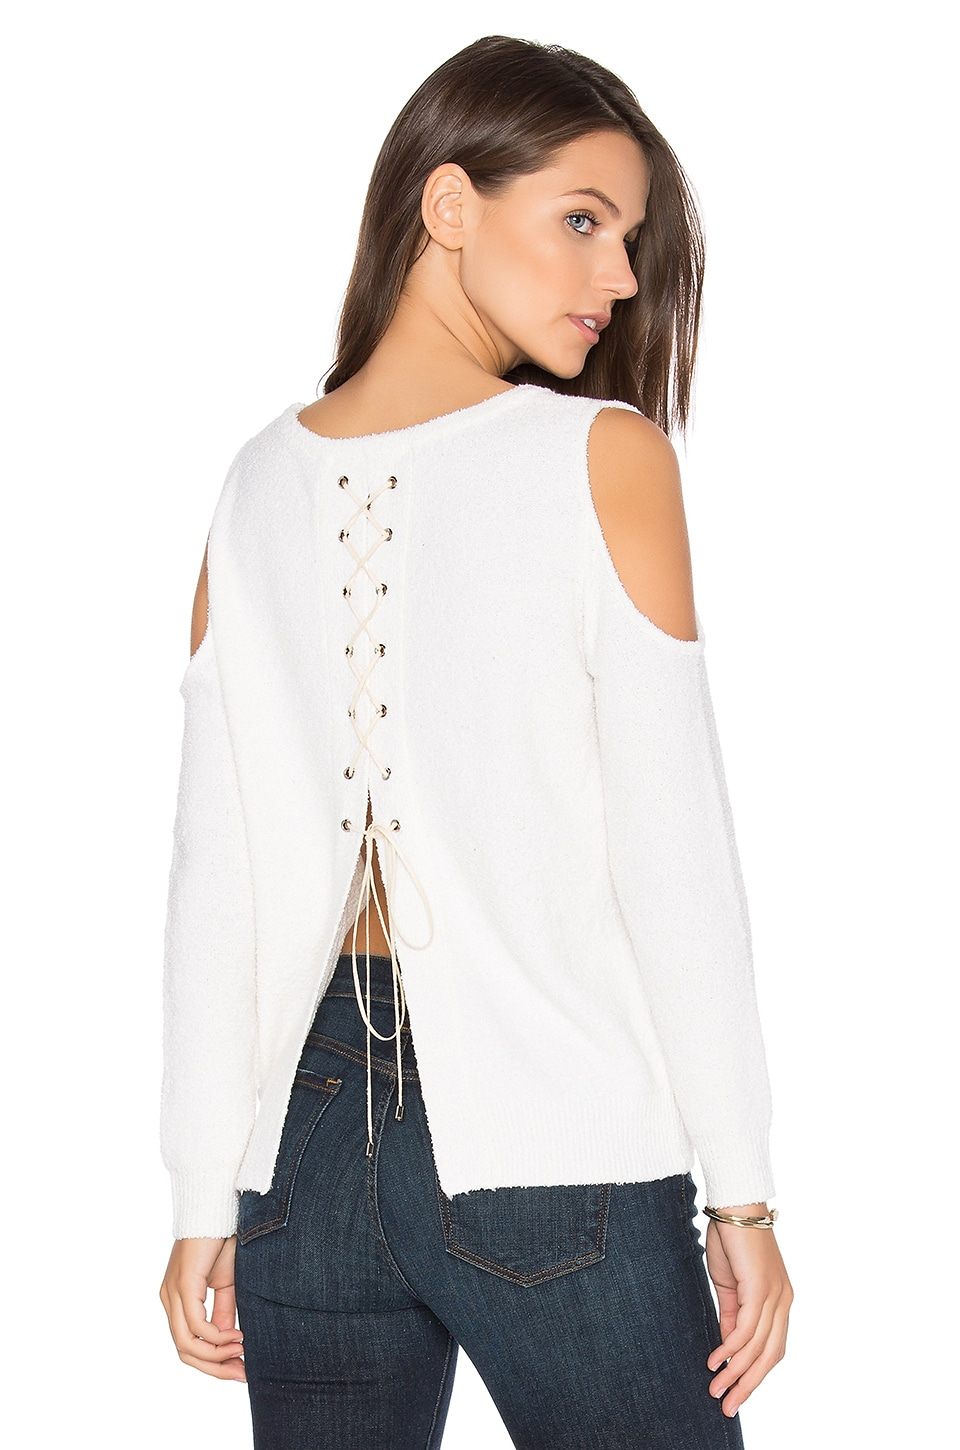 One Grey Day Sylvie Cold Shoulder Sweater in White